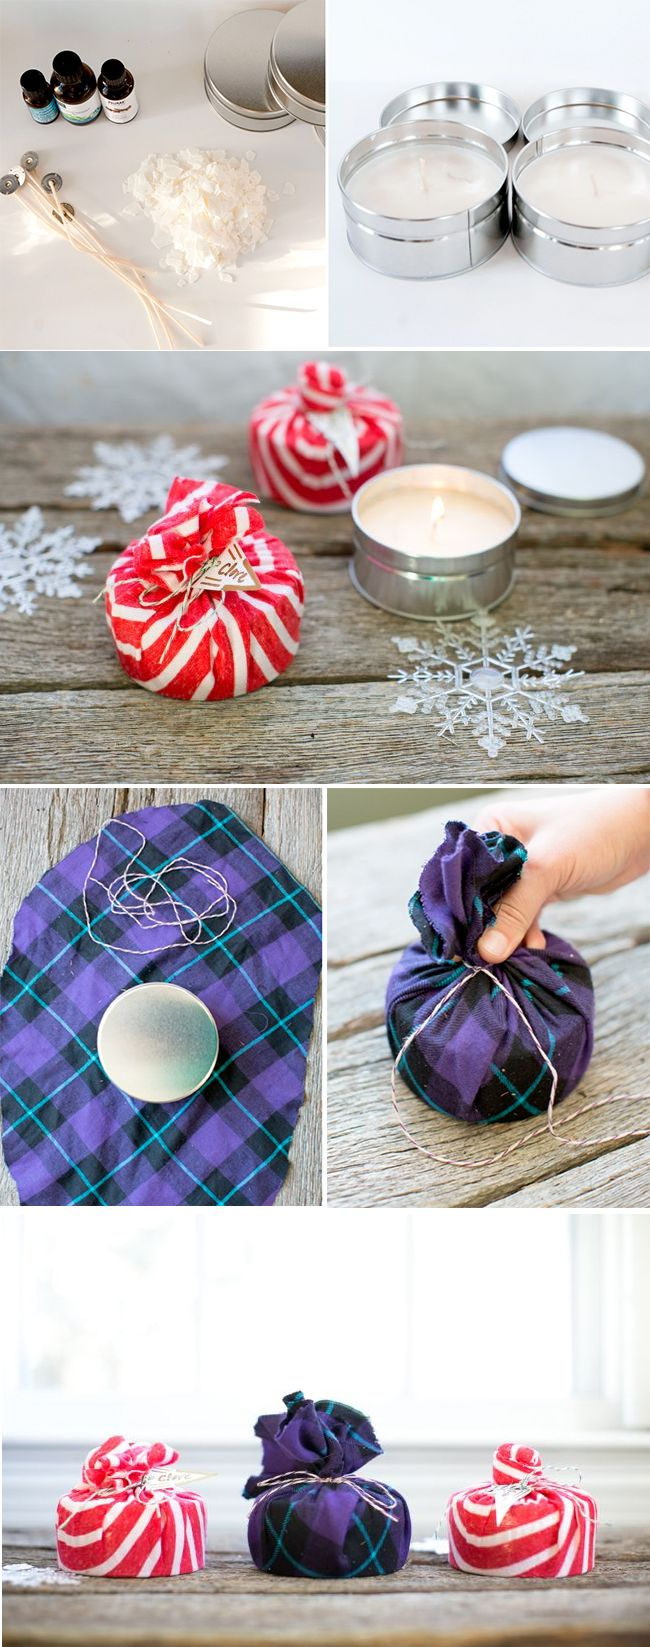 Perfect Hostess Gift! DIY Soy Wax Candles | http://hellonatural.co/diy-soy-wax-candles/